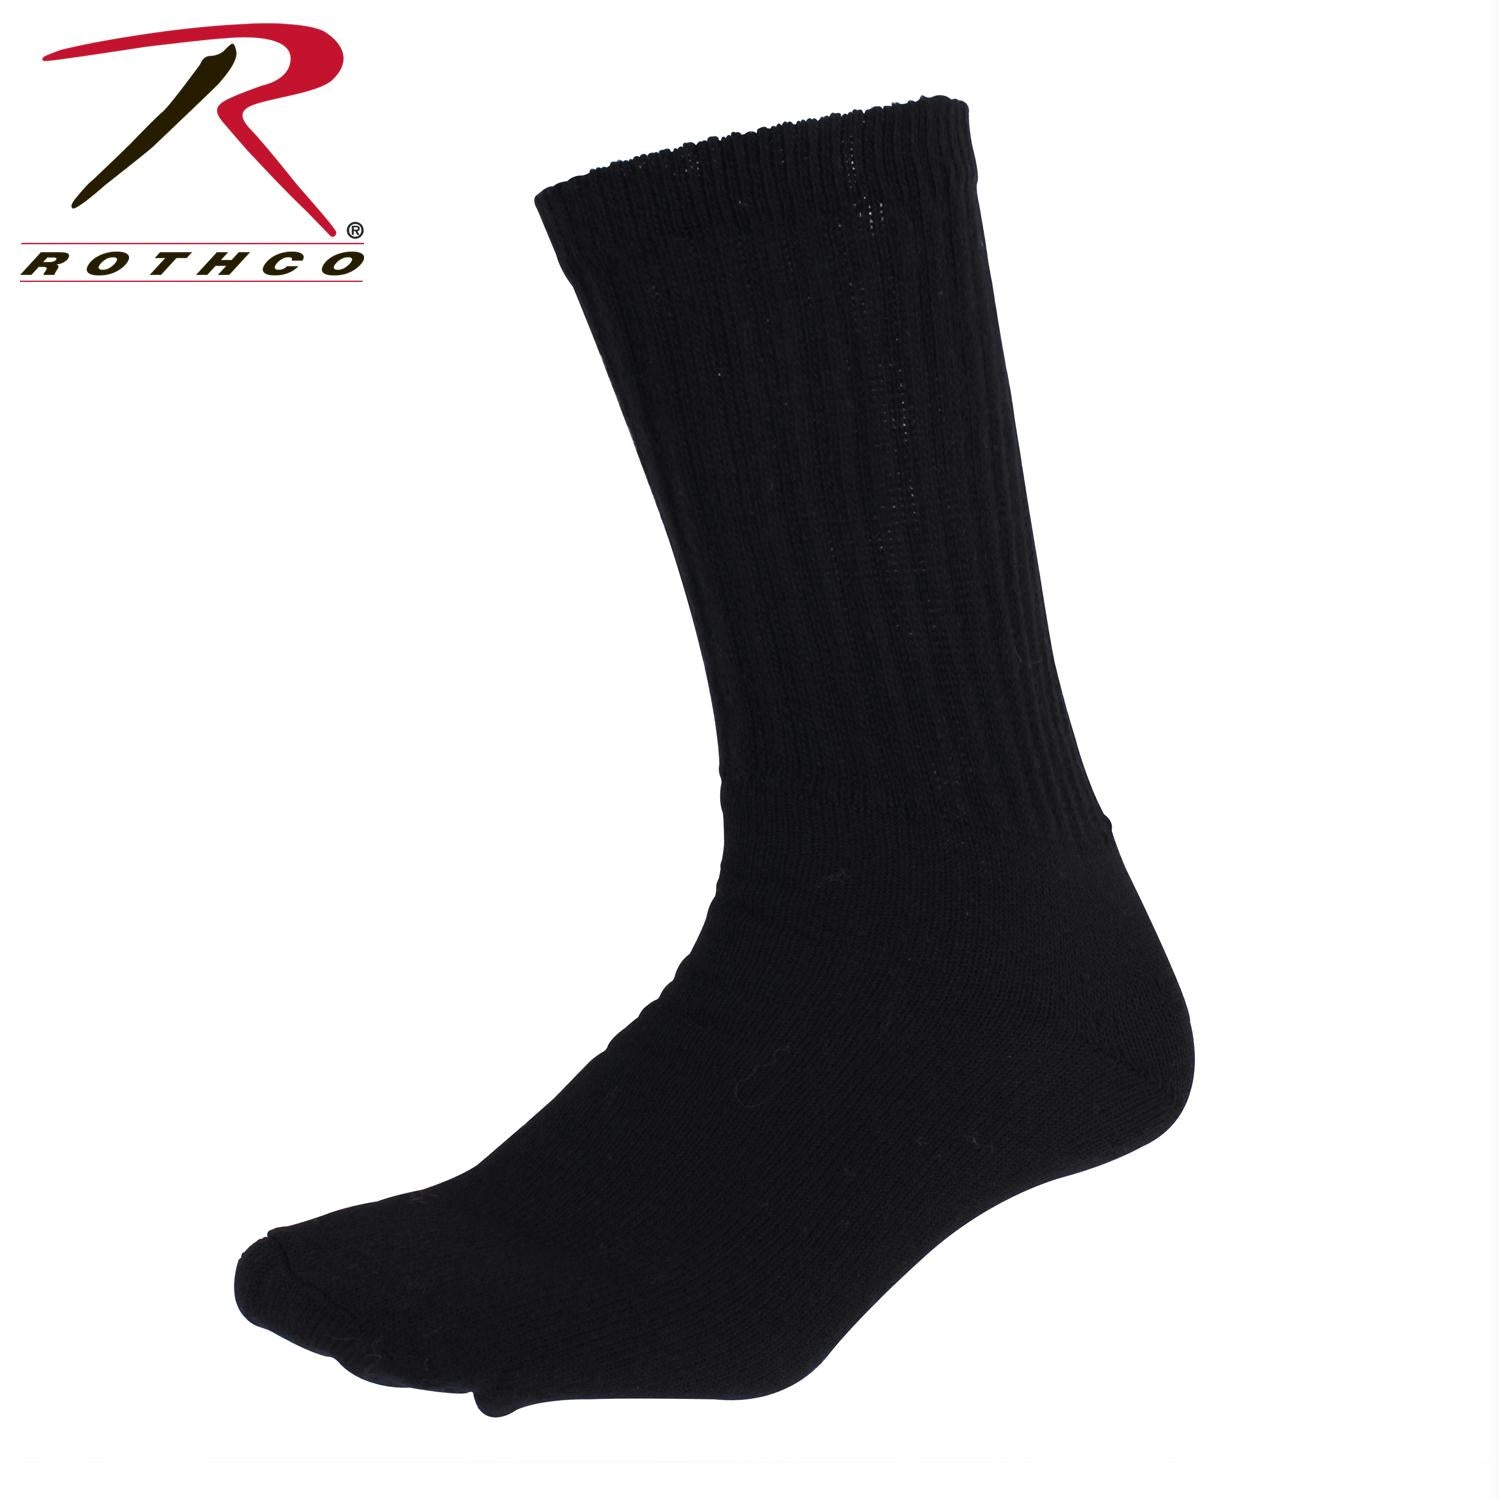 Rothco Athletic Crew Socks - Black / L